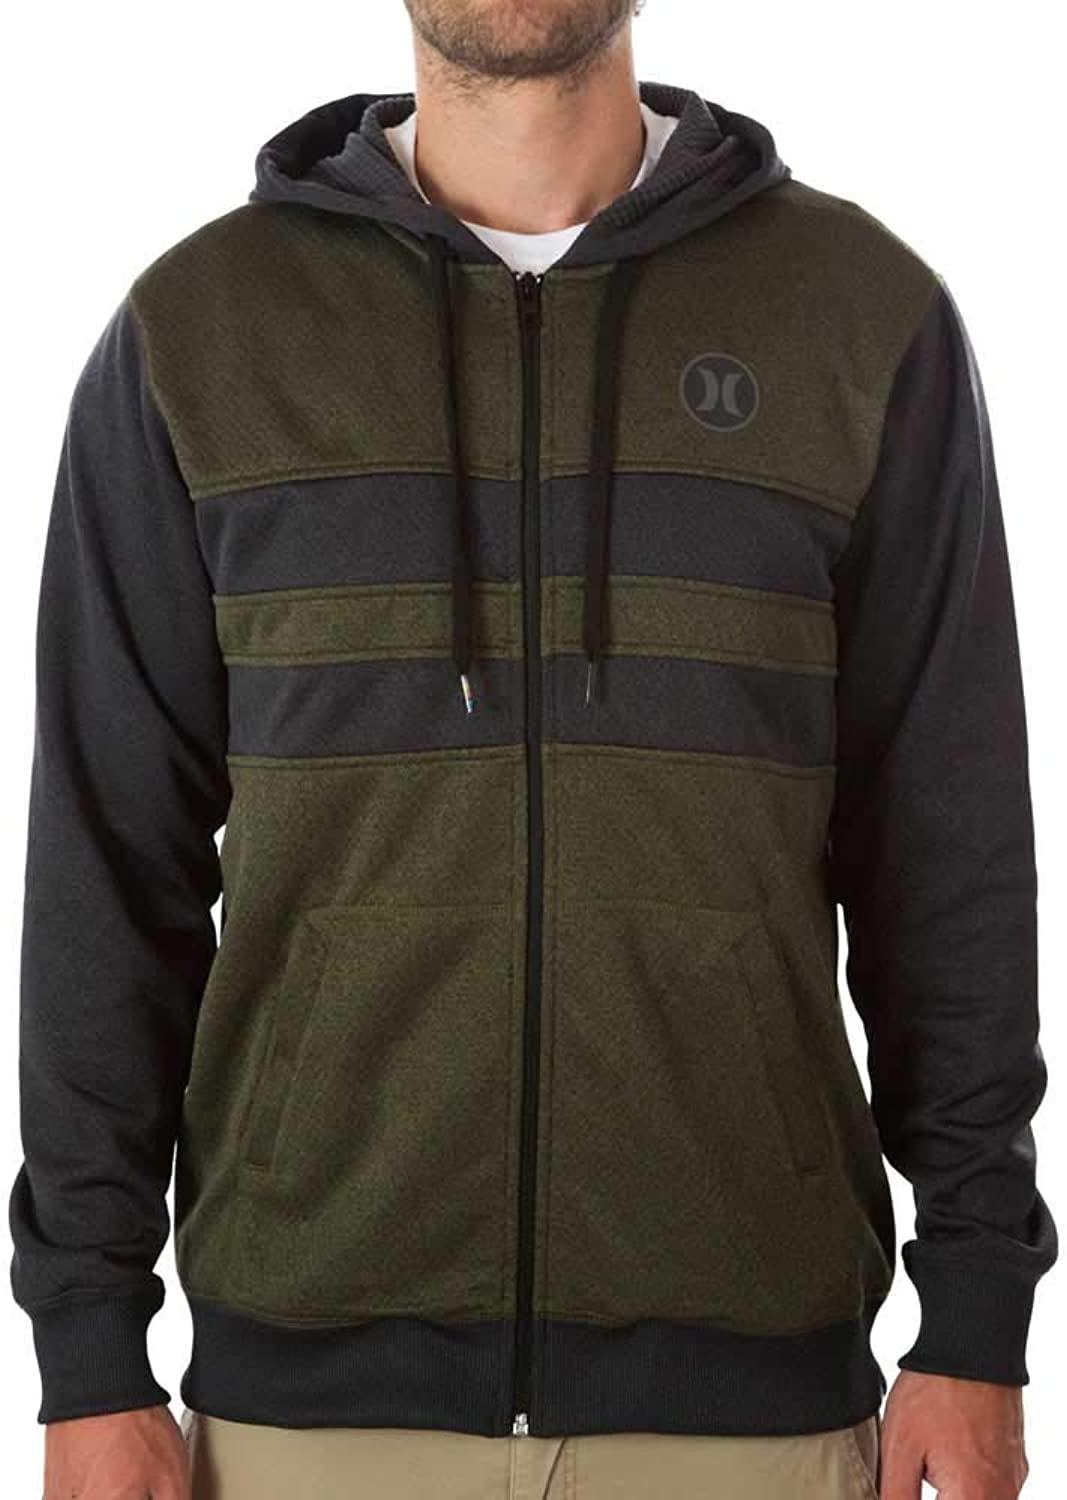 Hurley Herren Kaputzenjacke Therma-Fit Block Party